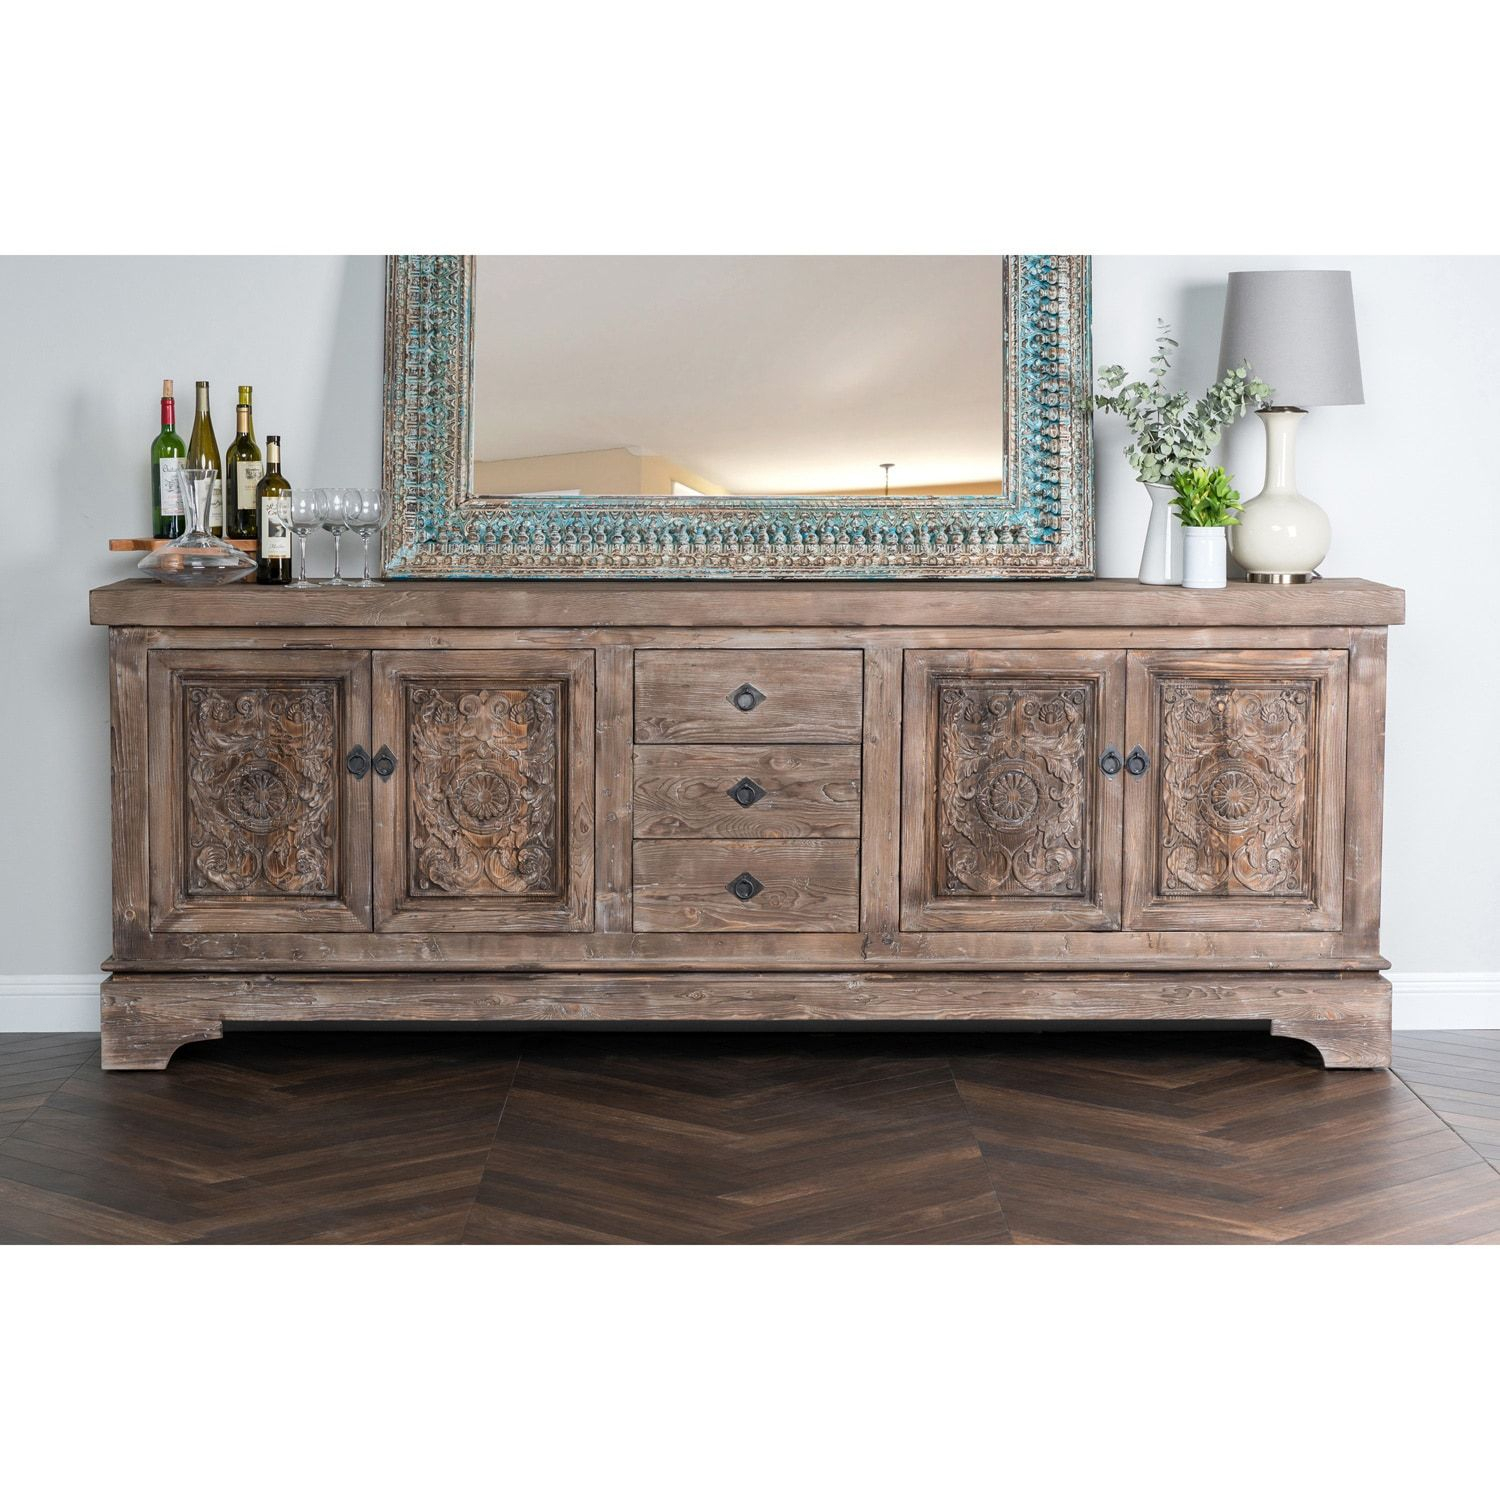 Allen Rustic Taupe Reclaimed Pine 106 Inch Sideboard Throughout Haroun Mocha Sideboards (View 7 of 30)